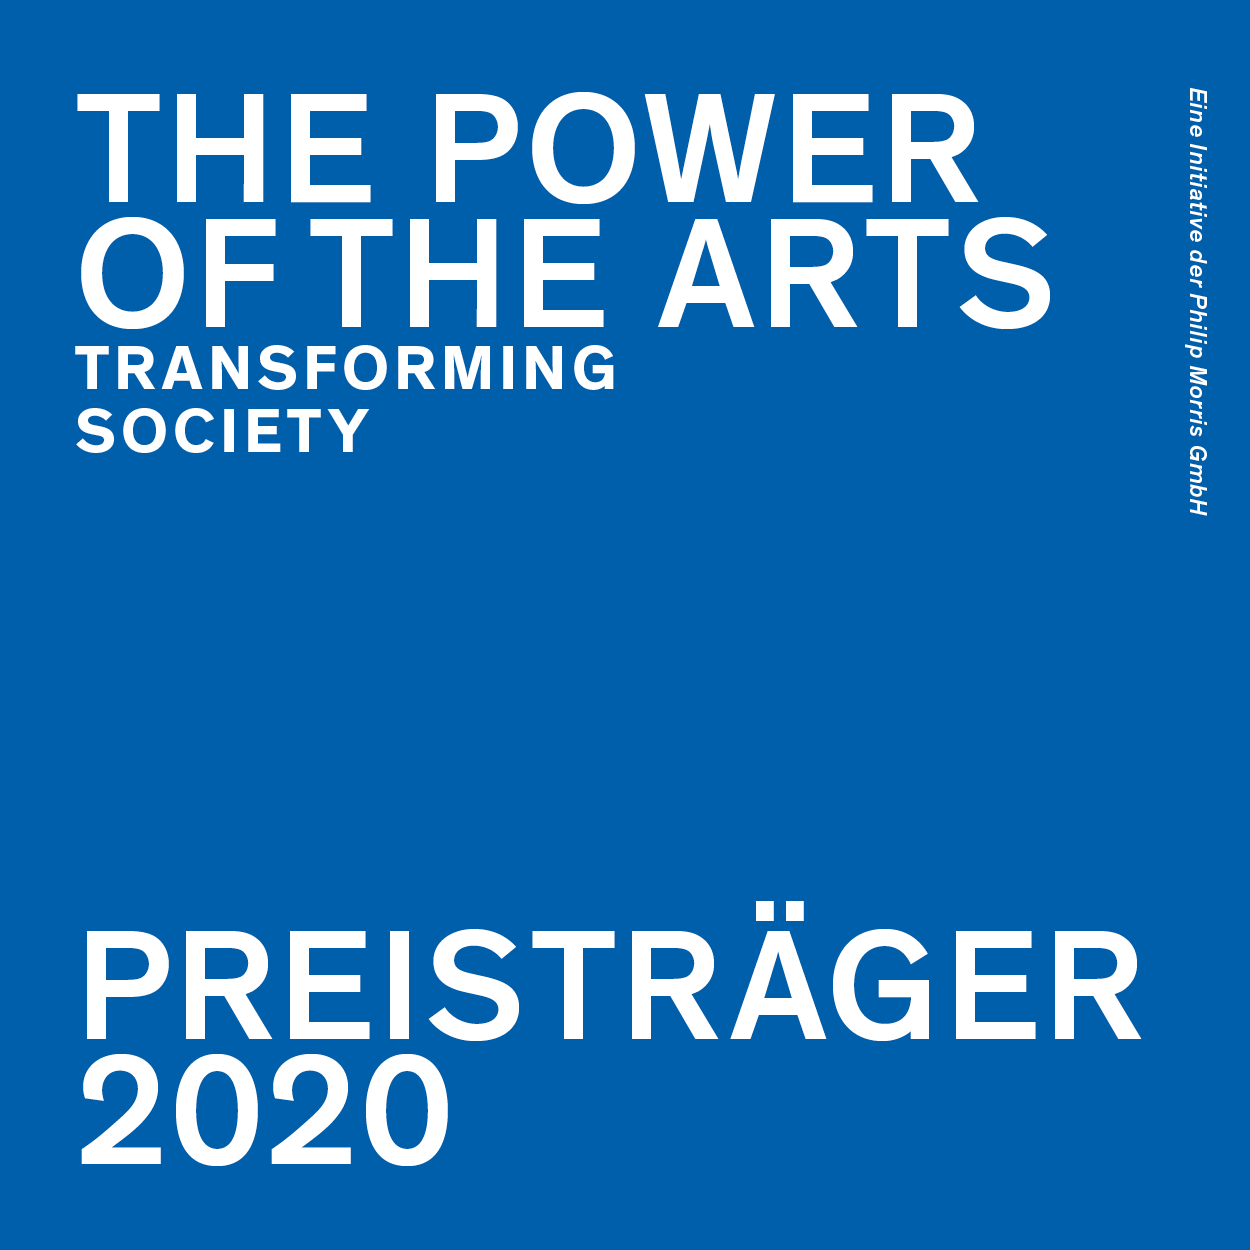 Power of the Arts Award 2020